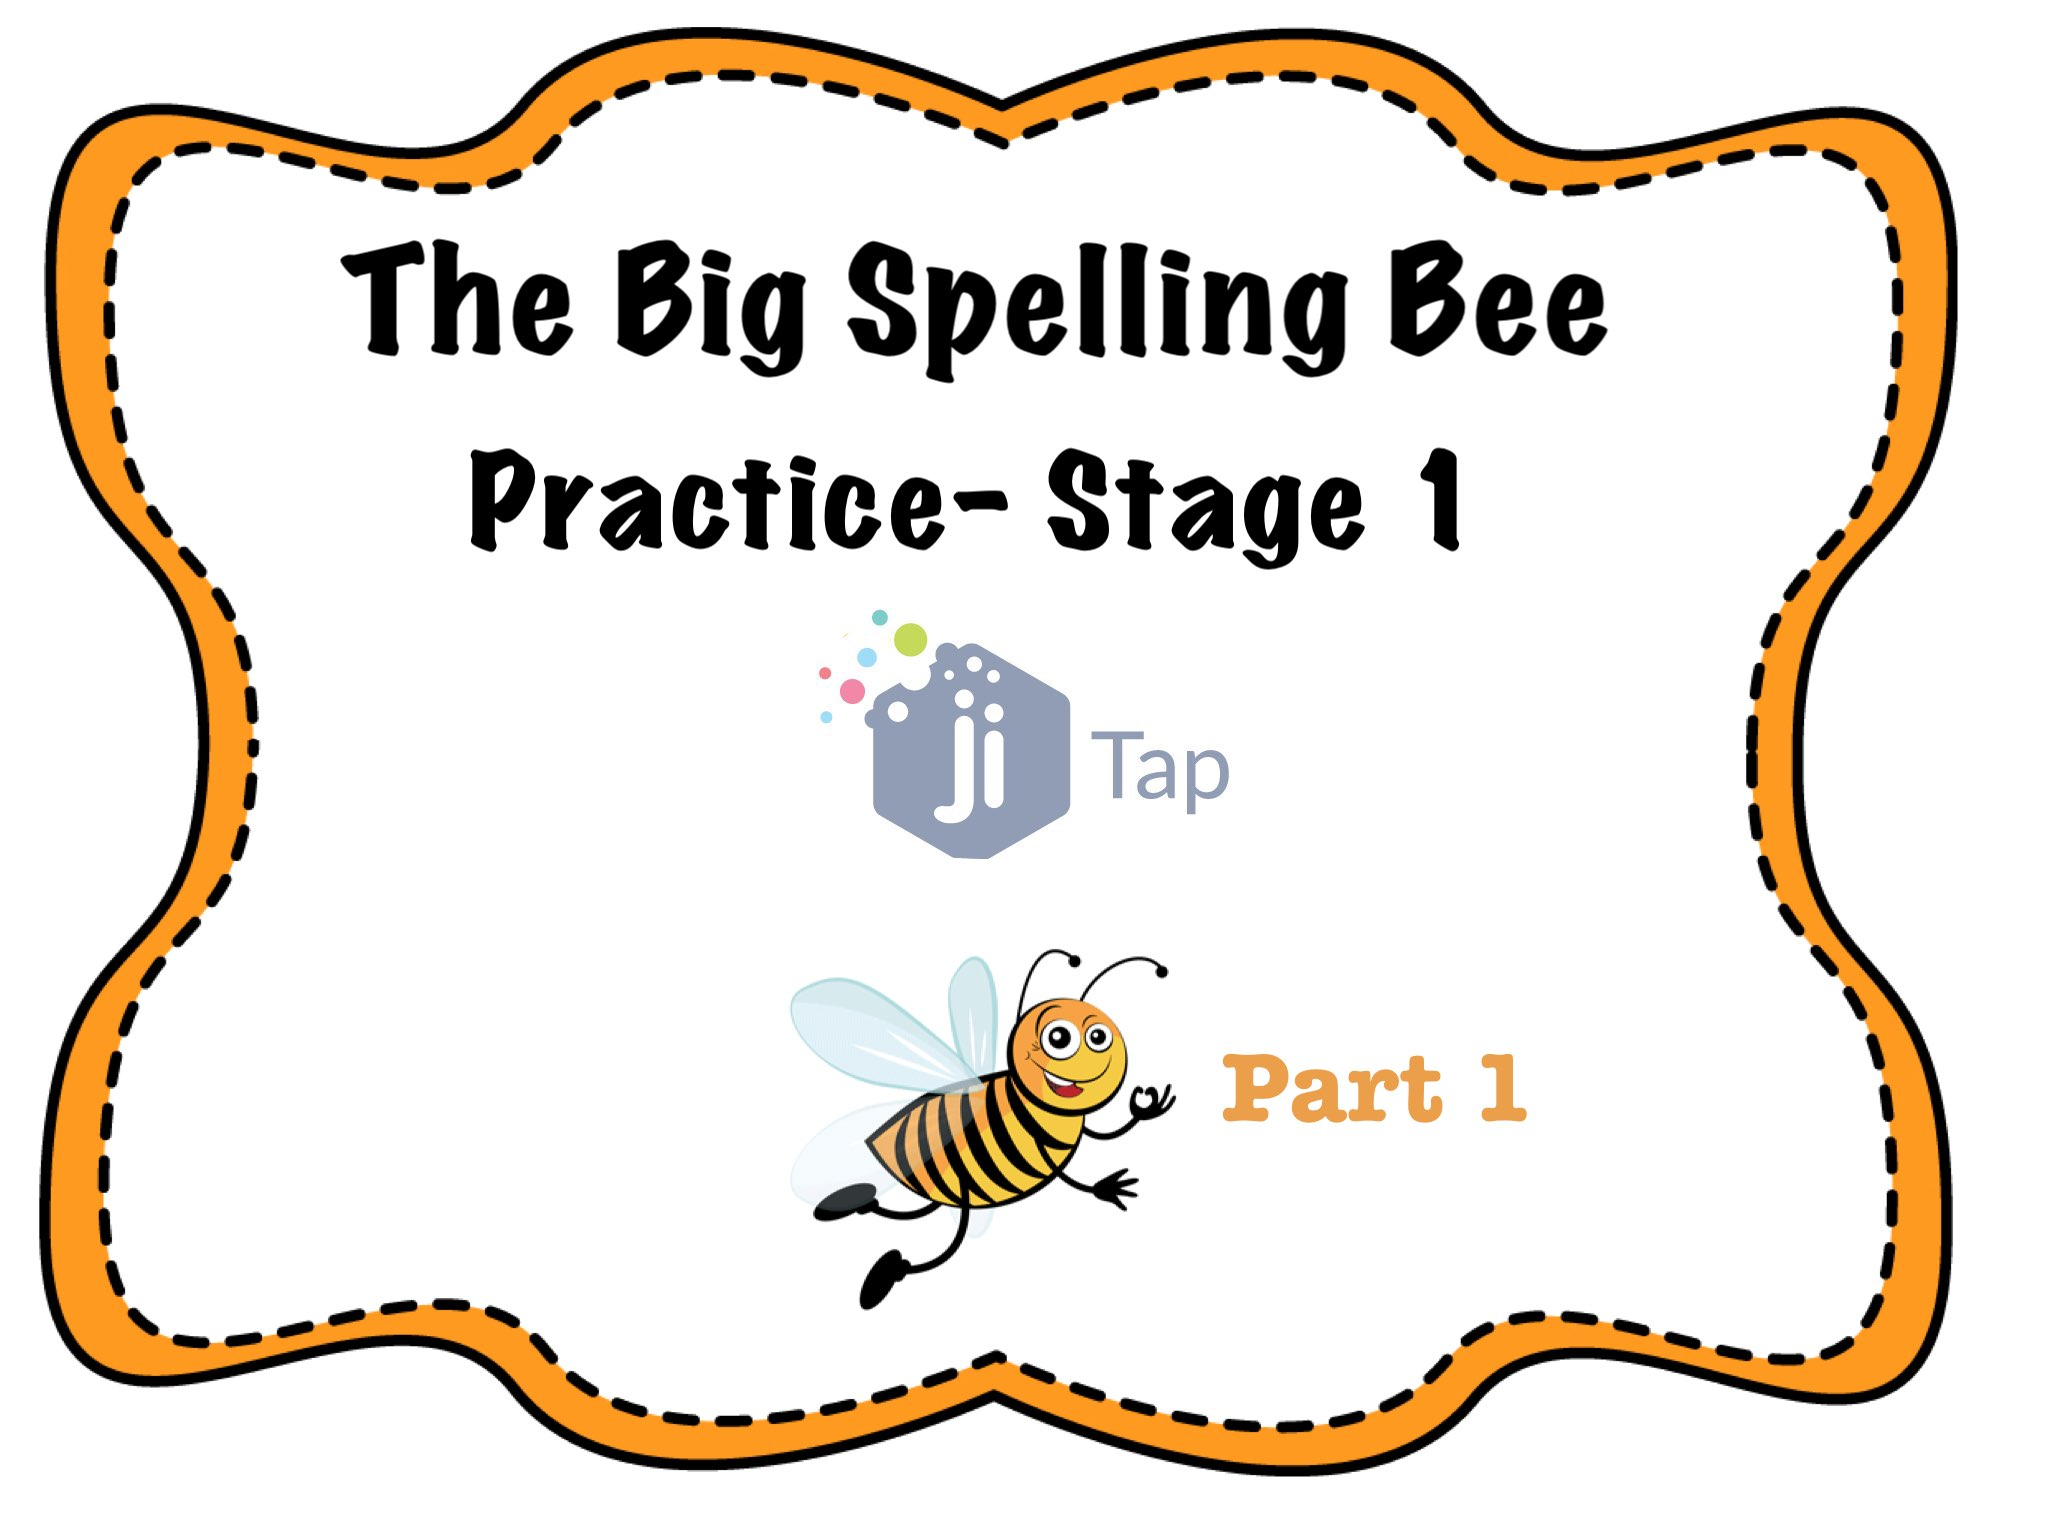 Play Spelling Bee Stage 1 Part 1 by Anat Goodman.